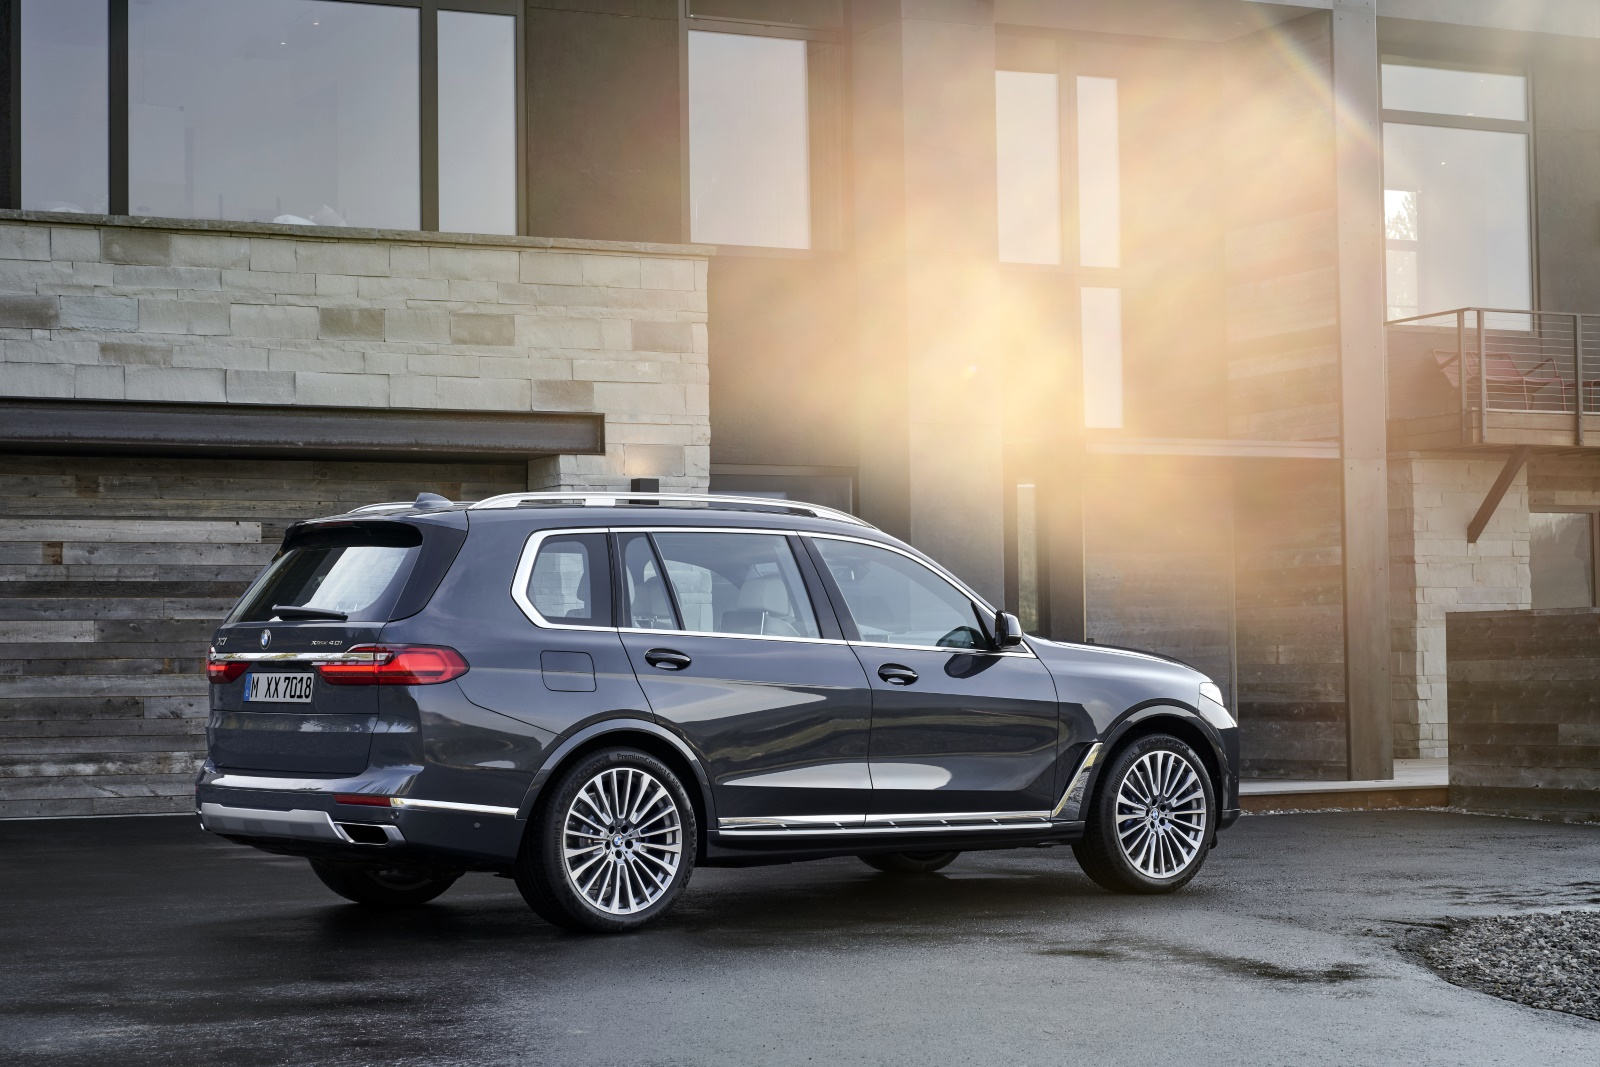 BMW X7 SUV Automaat Achterkant